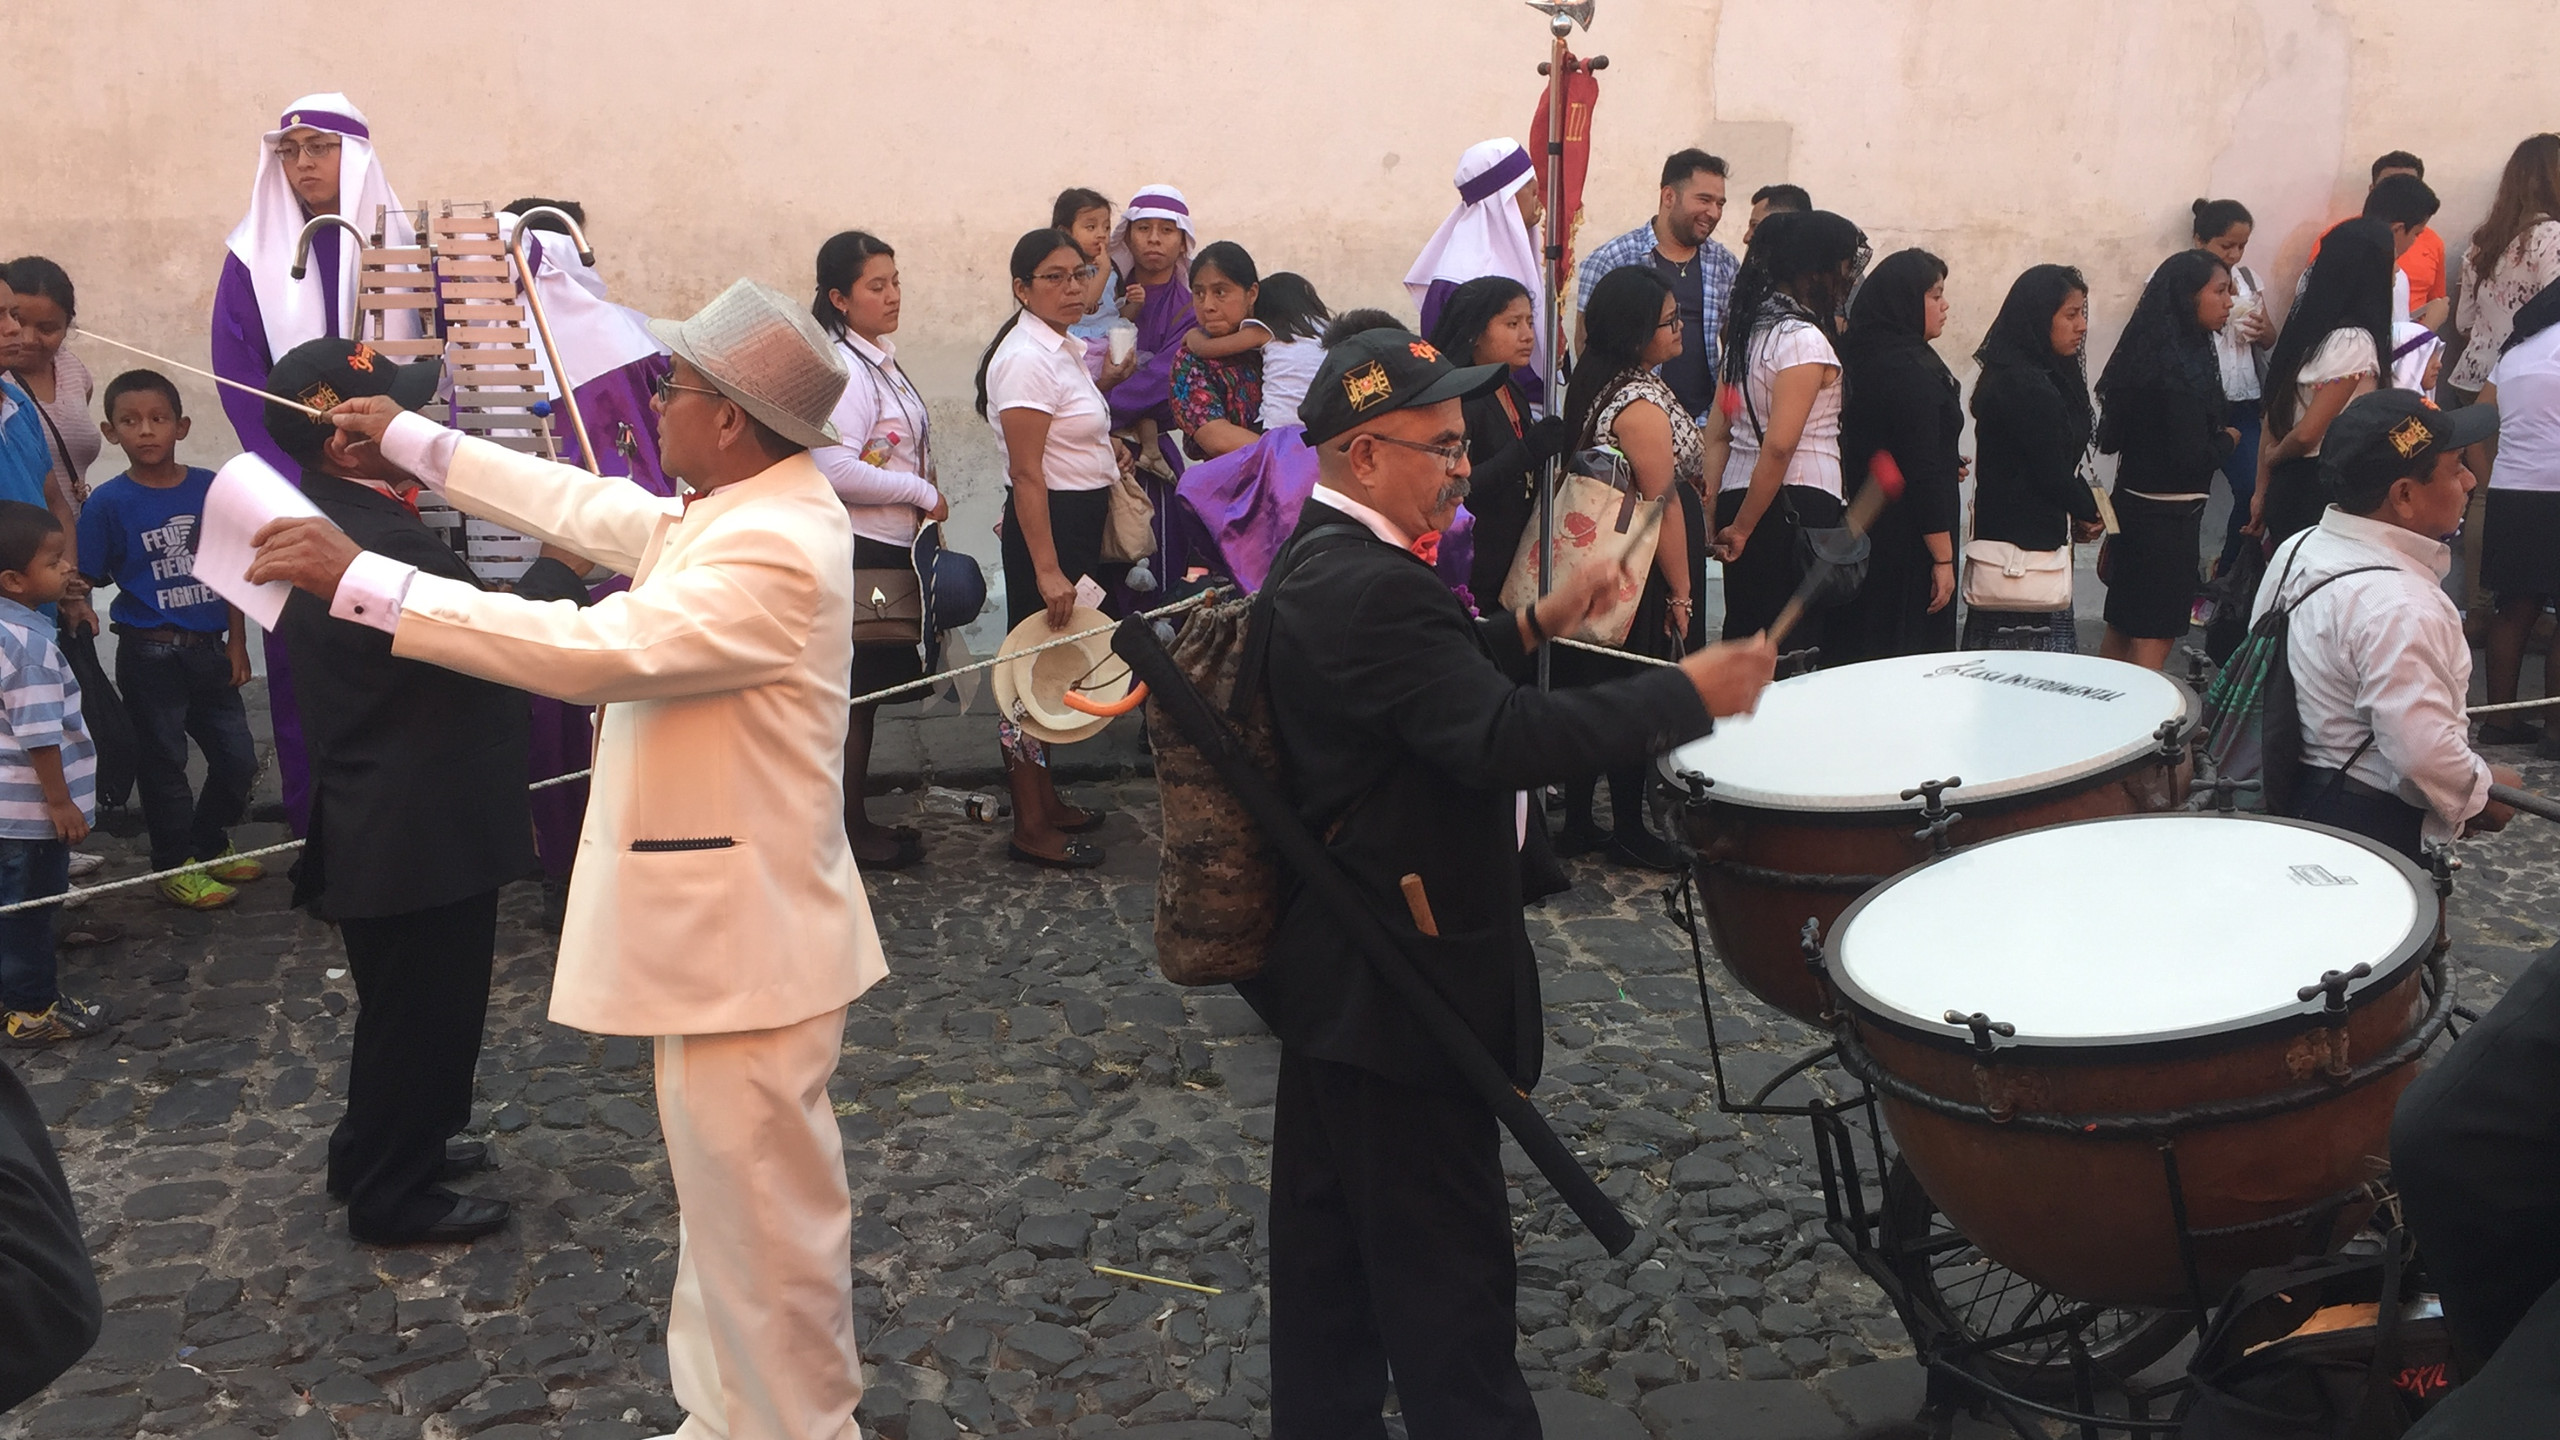 Music during the processions